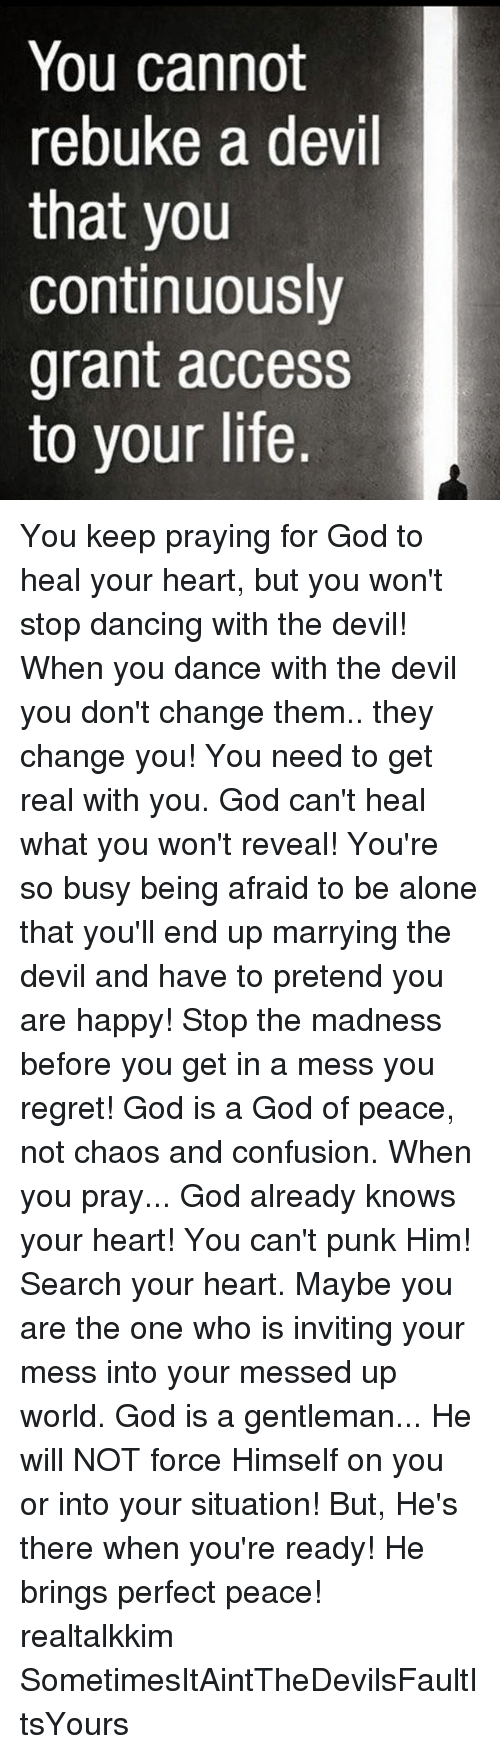 Regretation: You cannot  rebuke a devil  that you  continuously  grant access  to your life. You keep praying for God to heal your heart, but you won't stop dancing with the devil! When you dance with the devil you don't change them.. they change you! You need to get real with you. God can't heal what you won't reveal! You're so busy being afraid to be alone that you'll end up marrying the devil and have to pretend you are happy! Stop the madness before you get in a mess you regret! God is a God of peace, not chaos and confusion. When you pray... God already knows your heart! You can't punk Him! Search your heart. Maybe you are the one who is inviting your mess into your messed up world. God is a gentleman... He will NOT force Himself on you or into your situation! But, He's there when you're ready! He brings perfect peace! realtalkkim SometimesItAintTheDevilsFaultItsYours